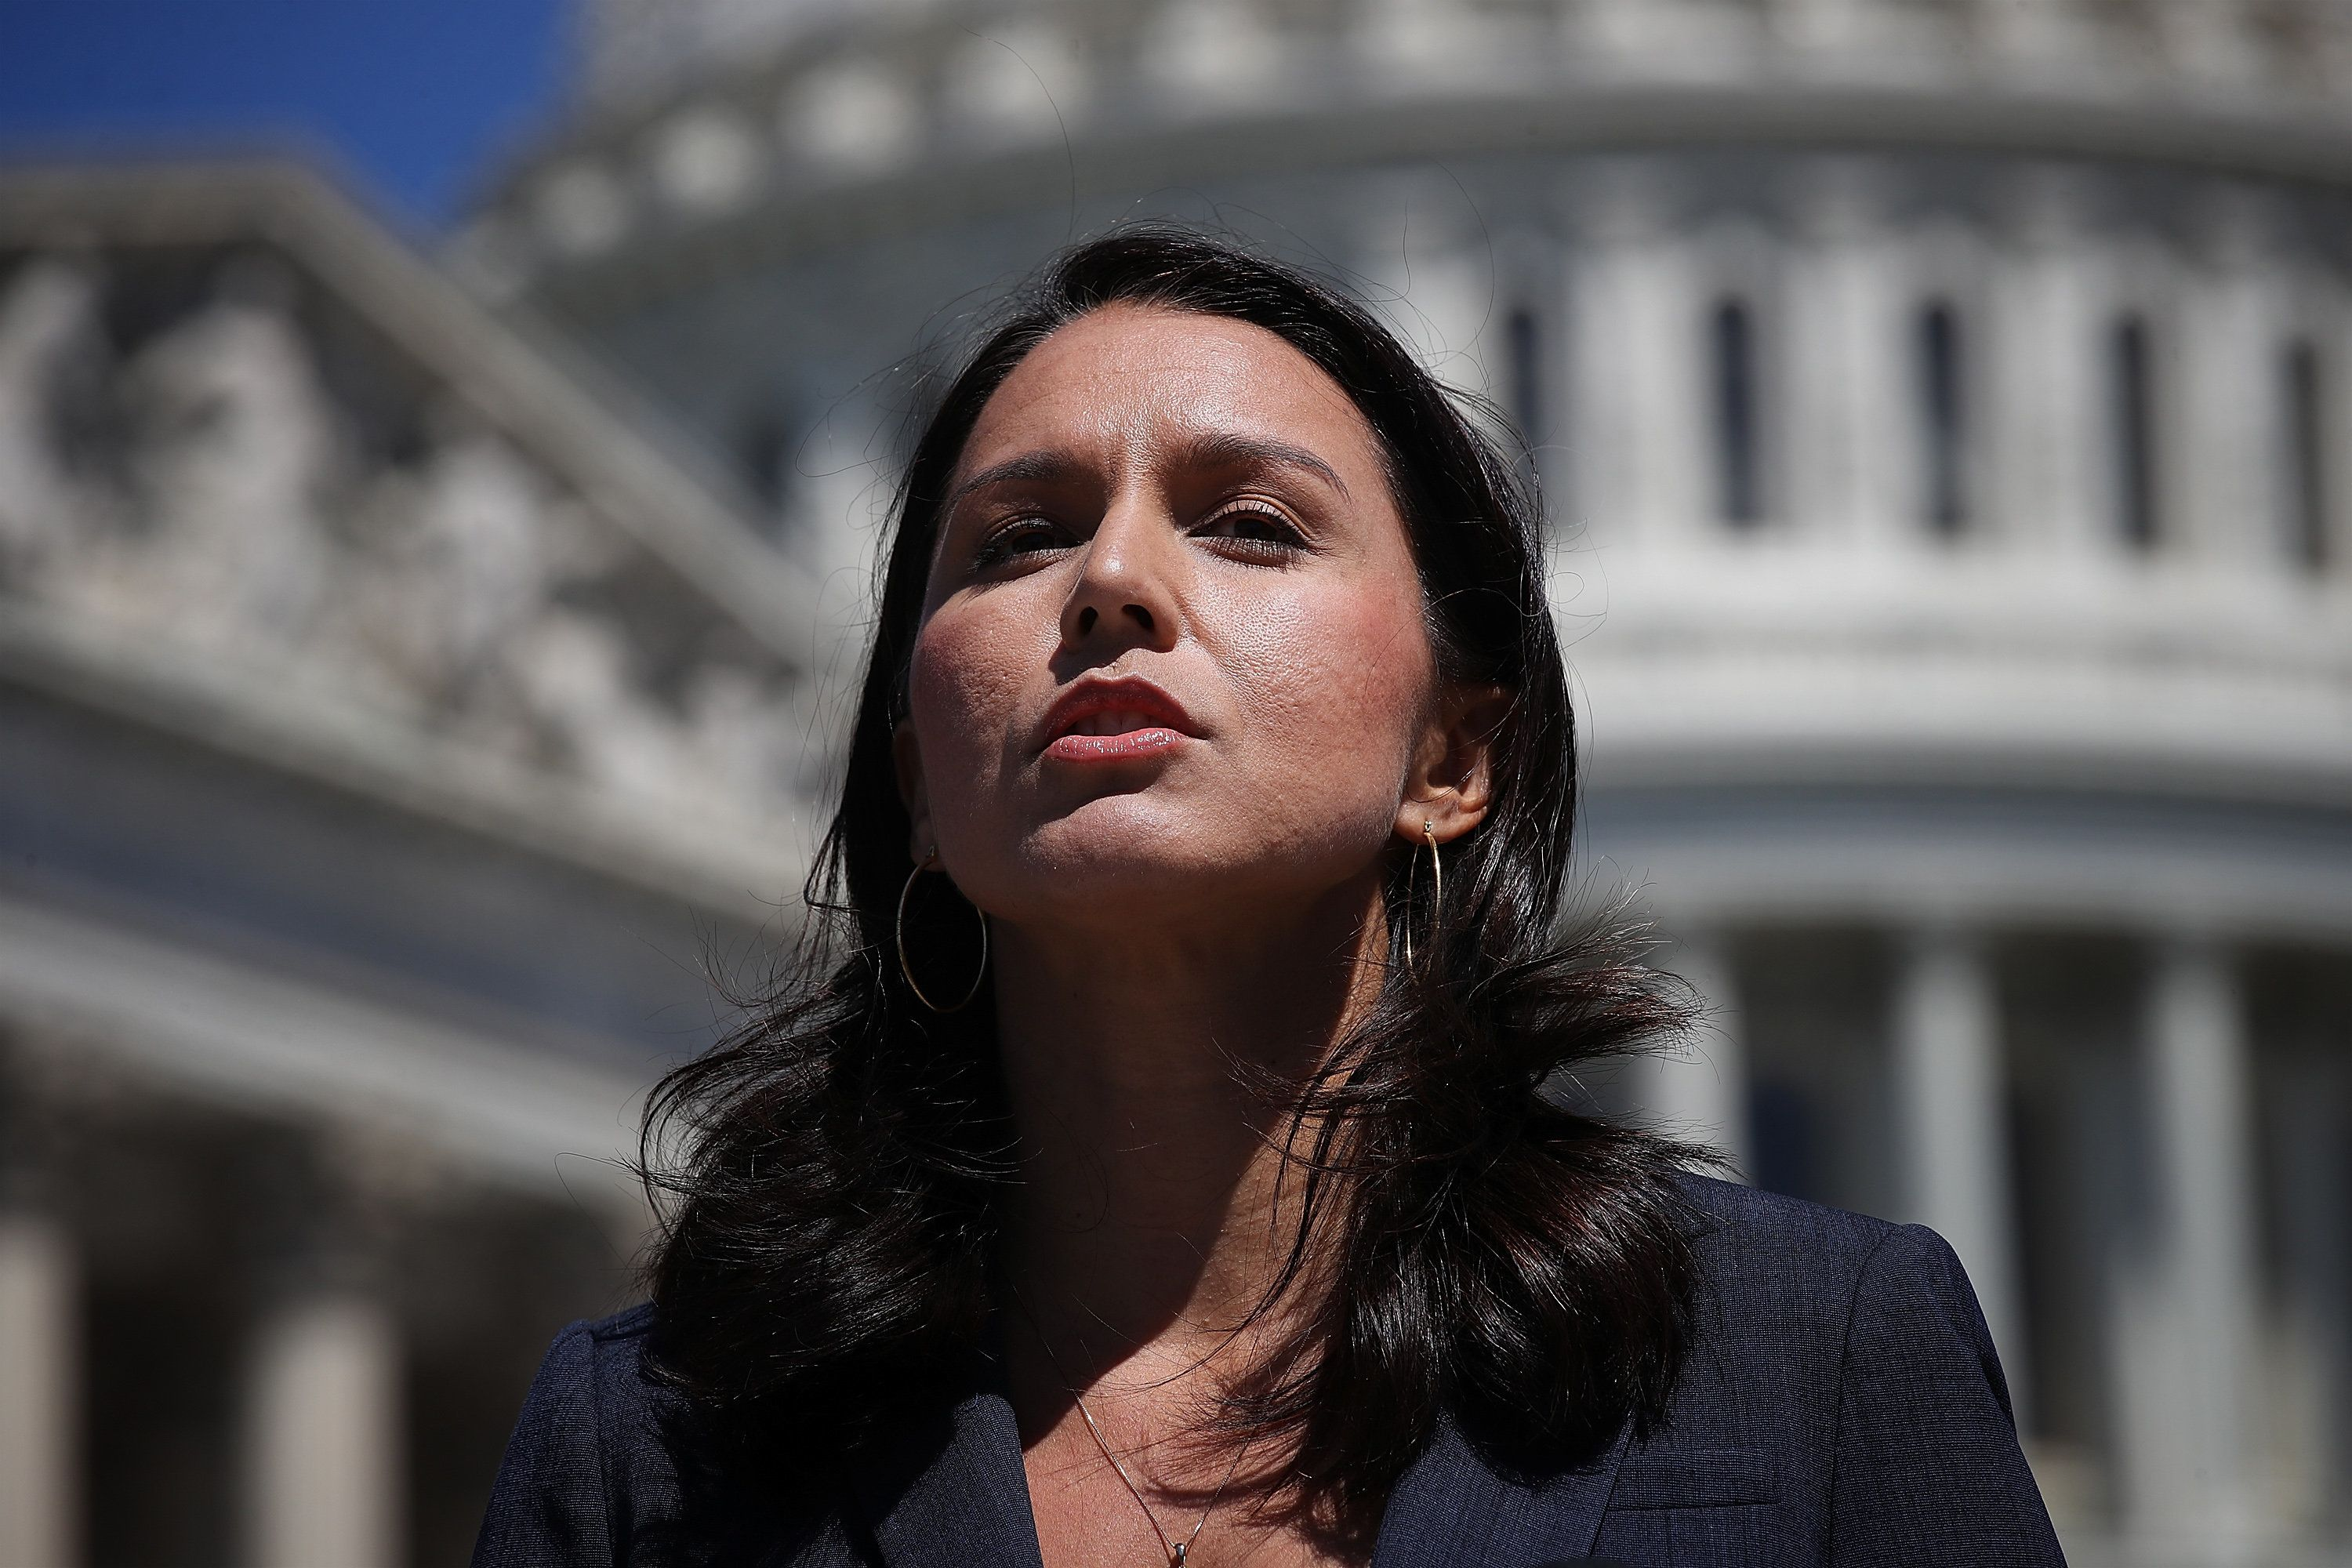 Westlake Legal Group 5c3a7e392500003600c589ad Tulsi Gabbard's Homophobic Remarks Surface After 2020 Presidential Announcement